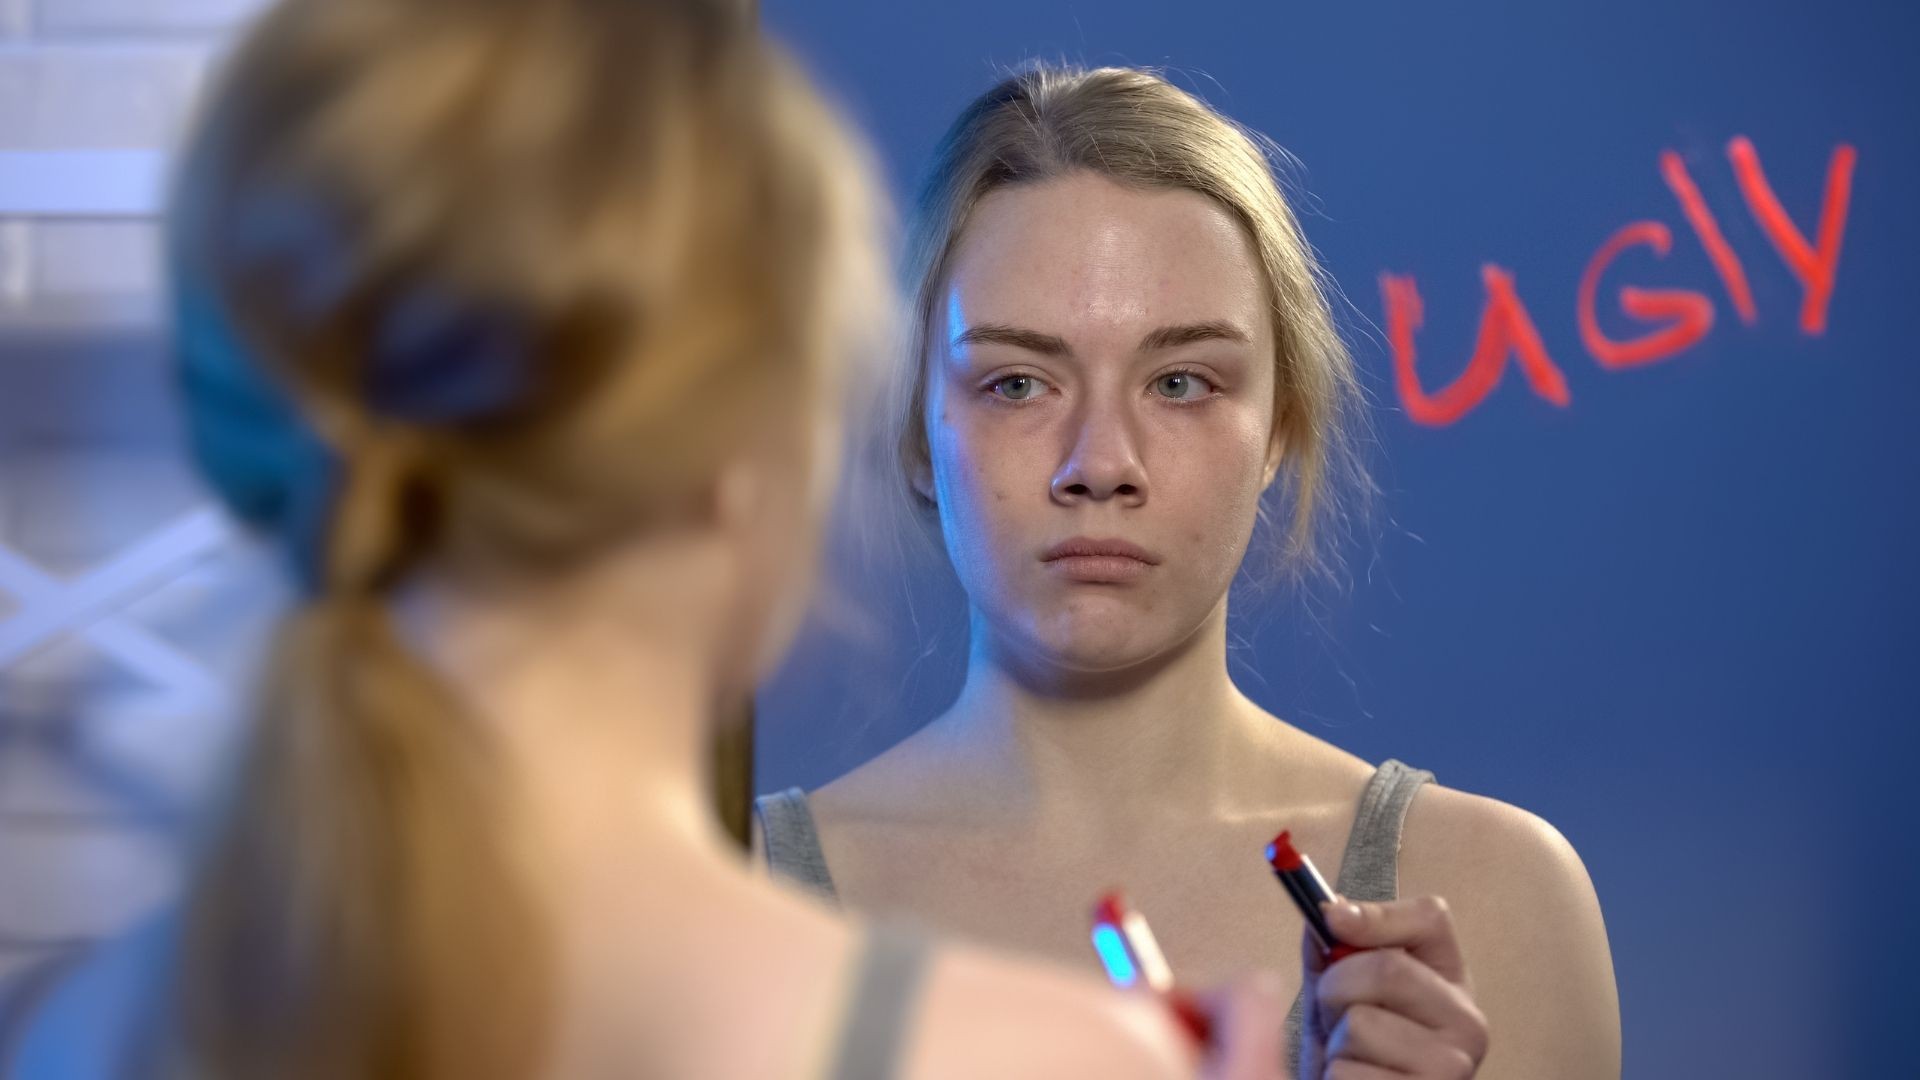 woman feeling ugly - It is okay to be unpretty or ugly